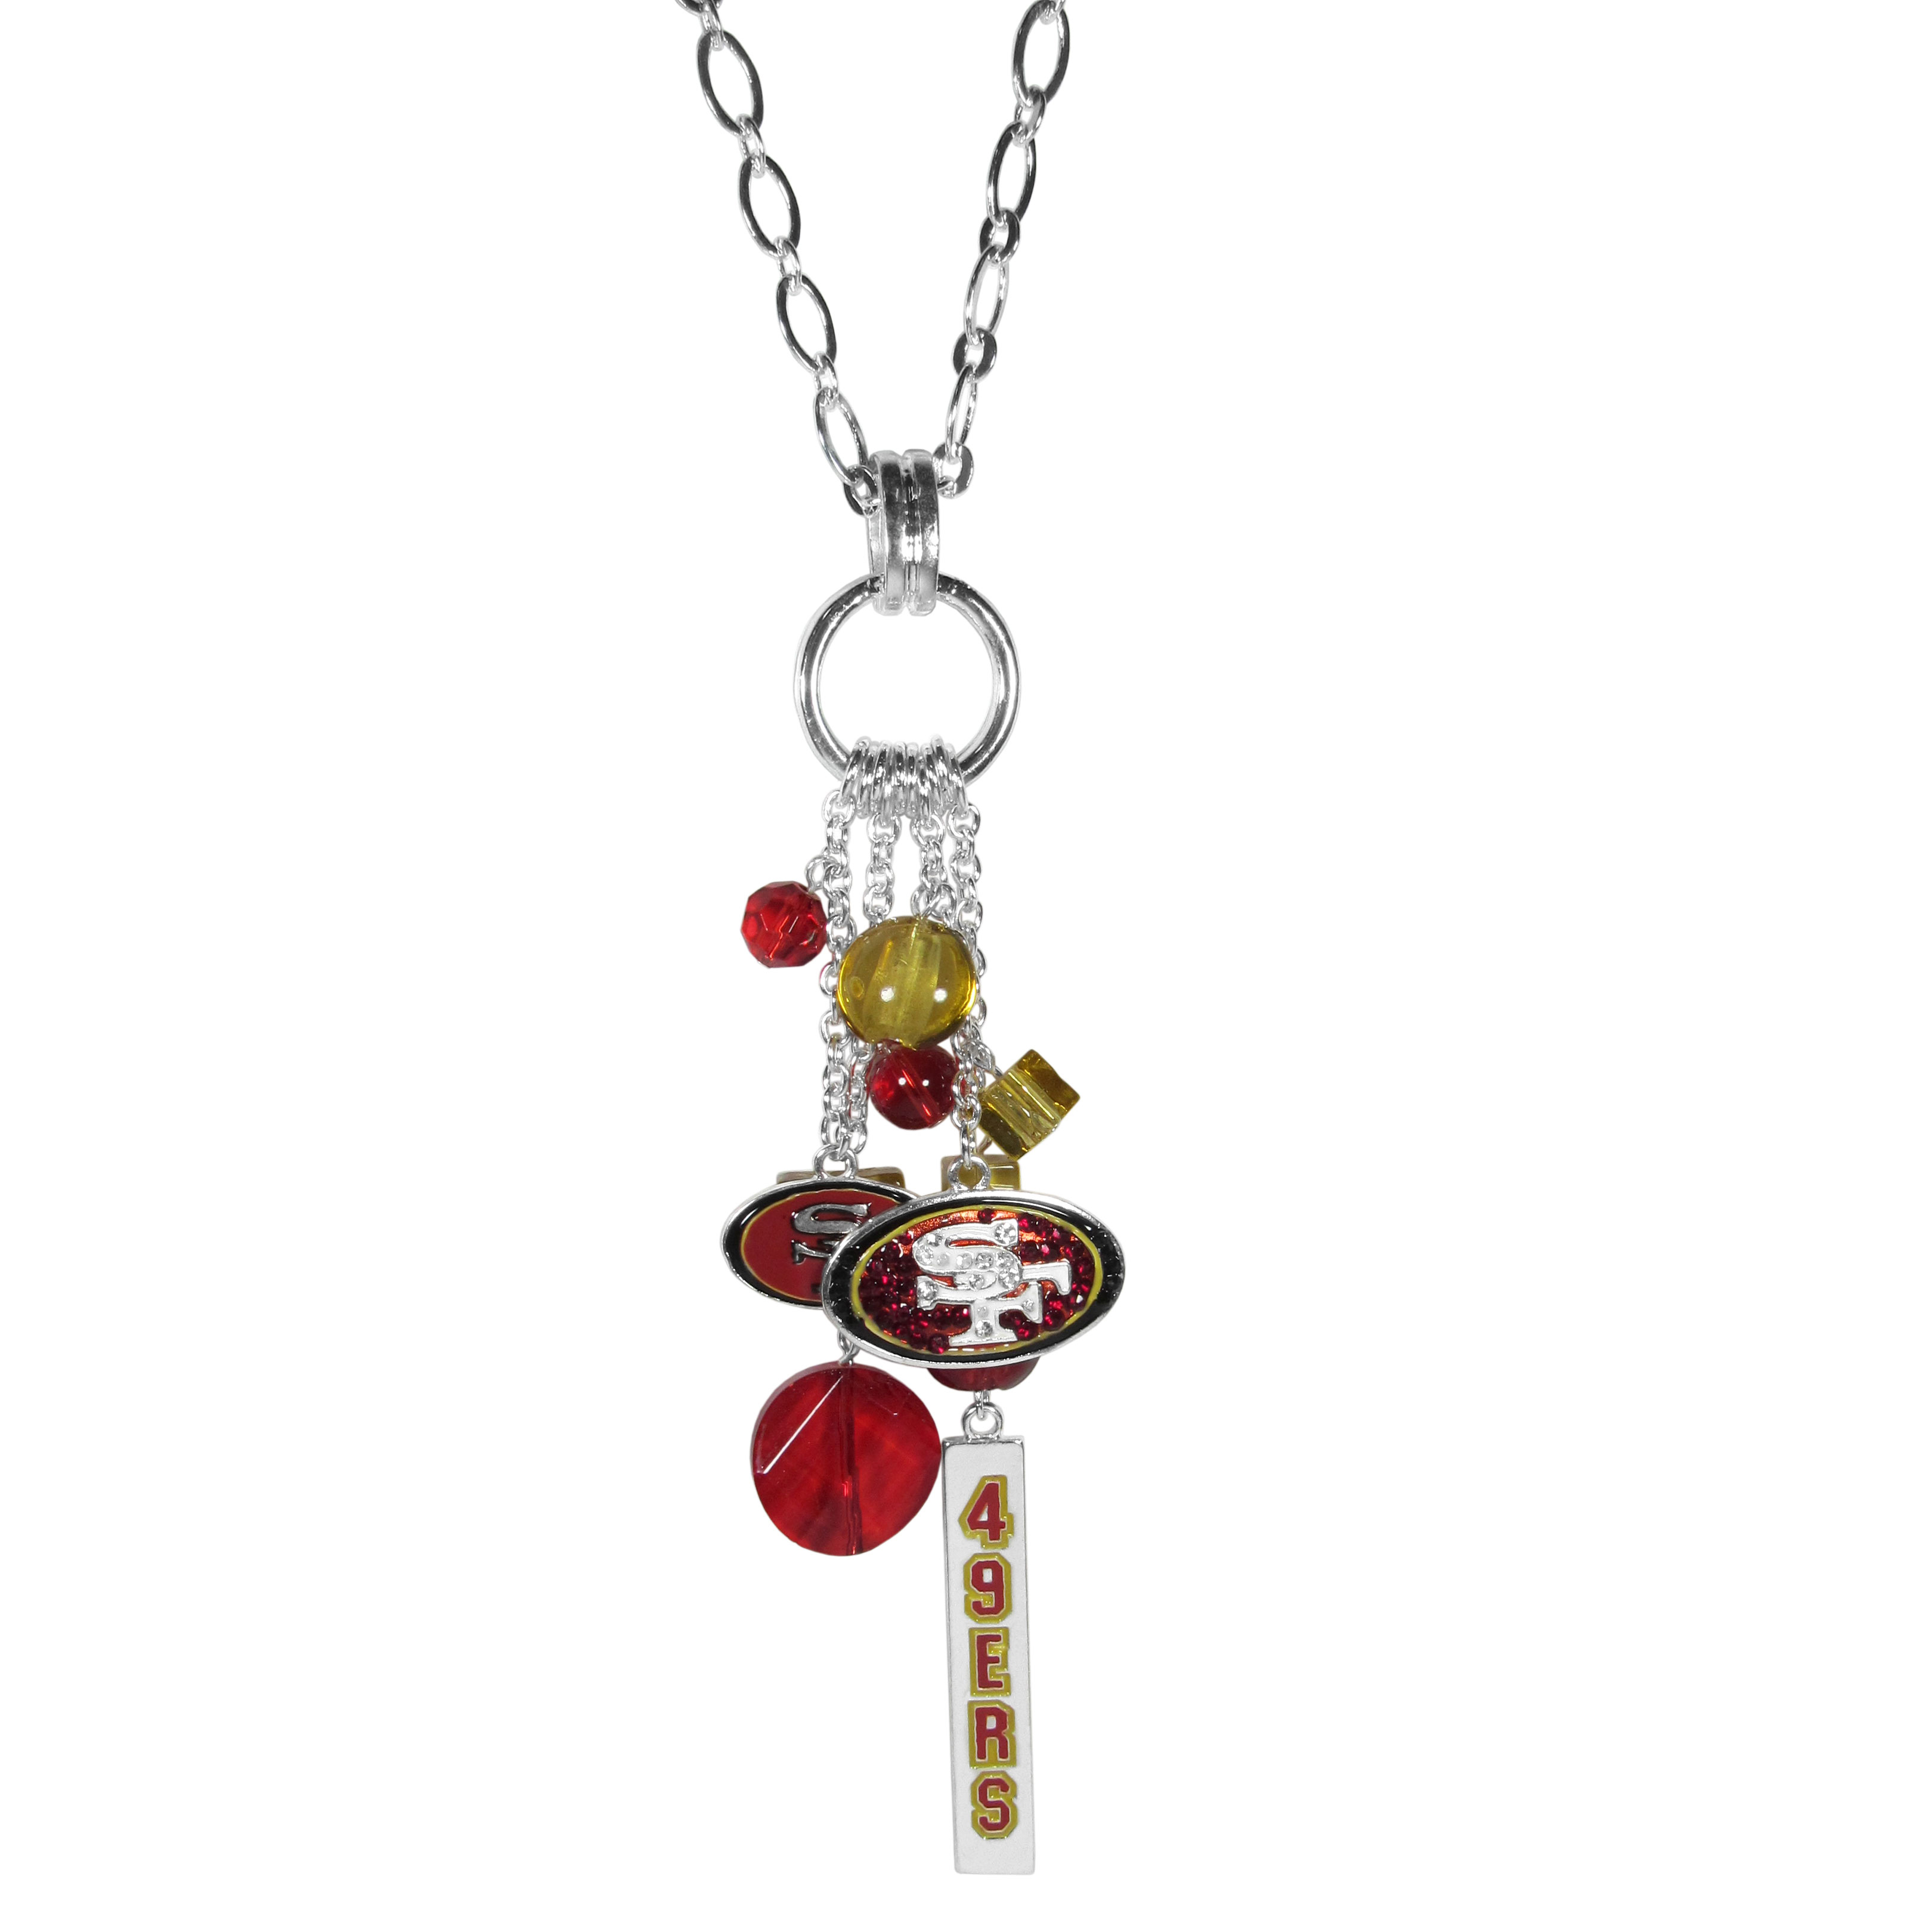 San Francisco 49ers Cluster Necklace - Our trendy cluster necklace makes a big statement with a 30 inch, silver plated, link chain that features a stylish cluster of San Francisco 49ers charms that hang an additional 4 inches off of the chain. This bold fashion jewelry piece has 4 chain lenghts in the cluster that have alternating color bauble beads and 2 metal team charms, one with crystals and a long bar charm with the team name.